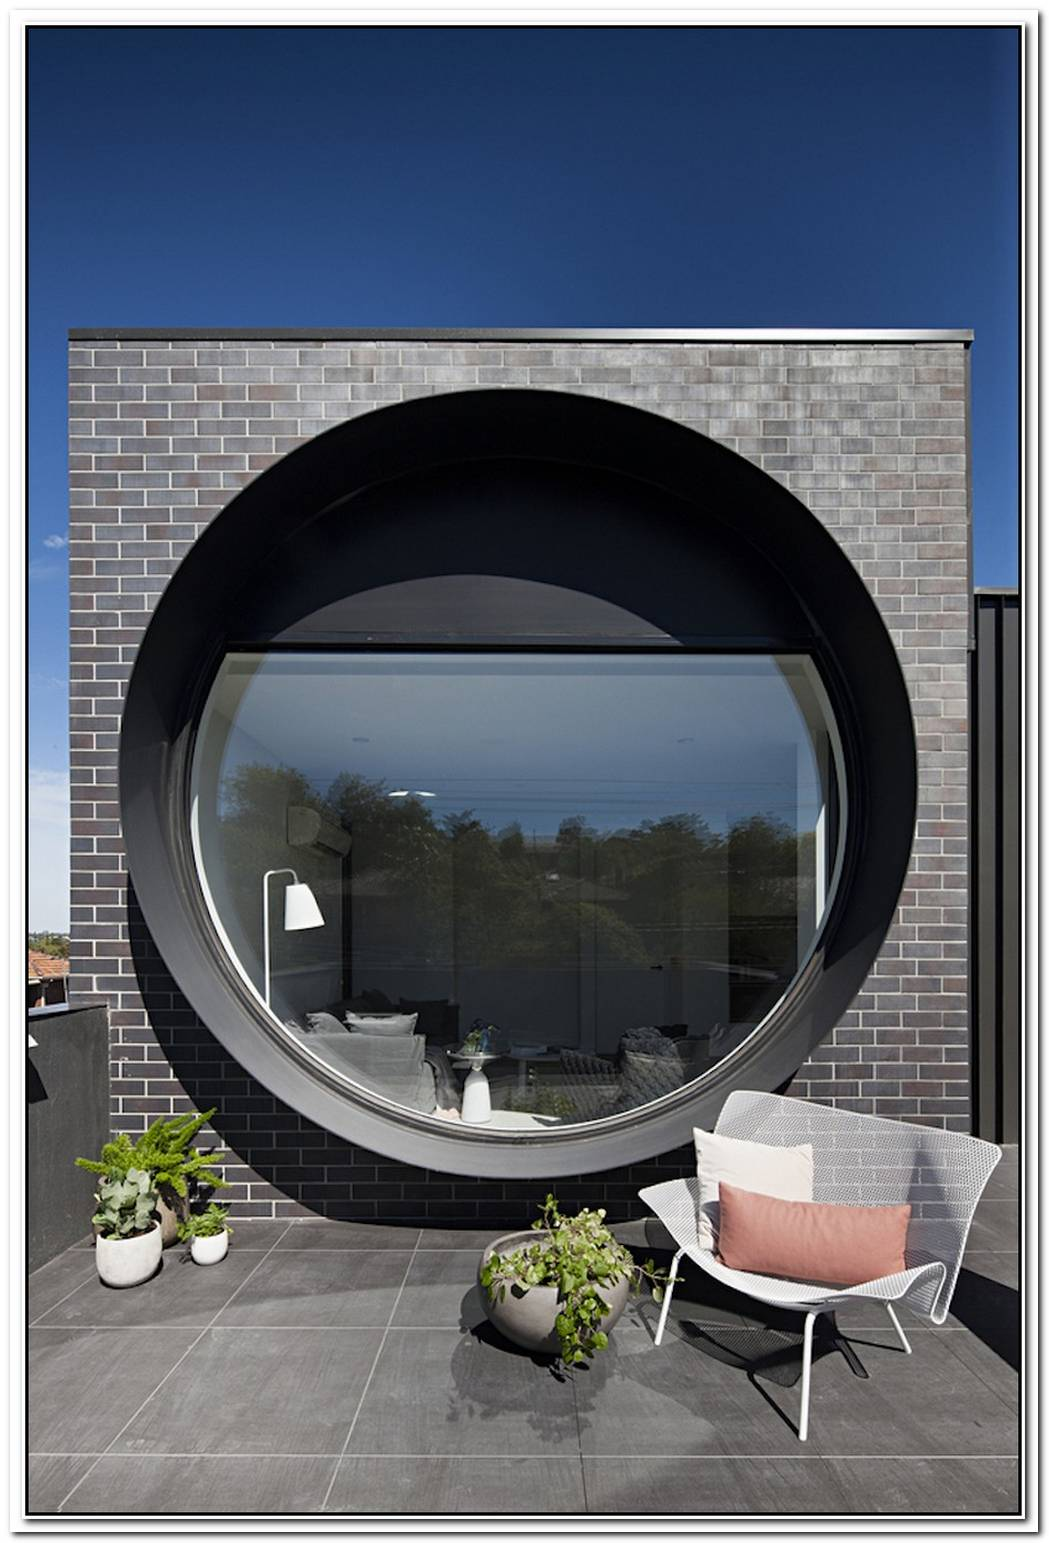 A Unique Apartment Building With Large Porthole Windows